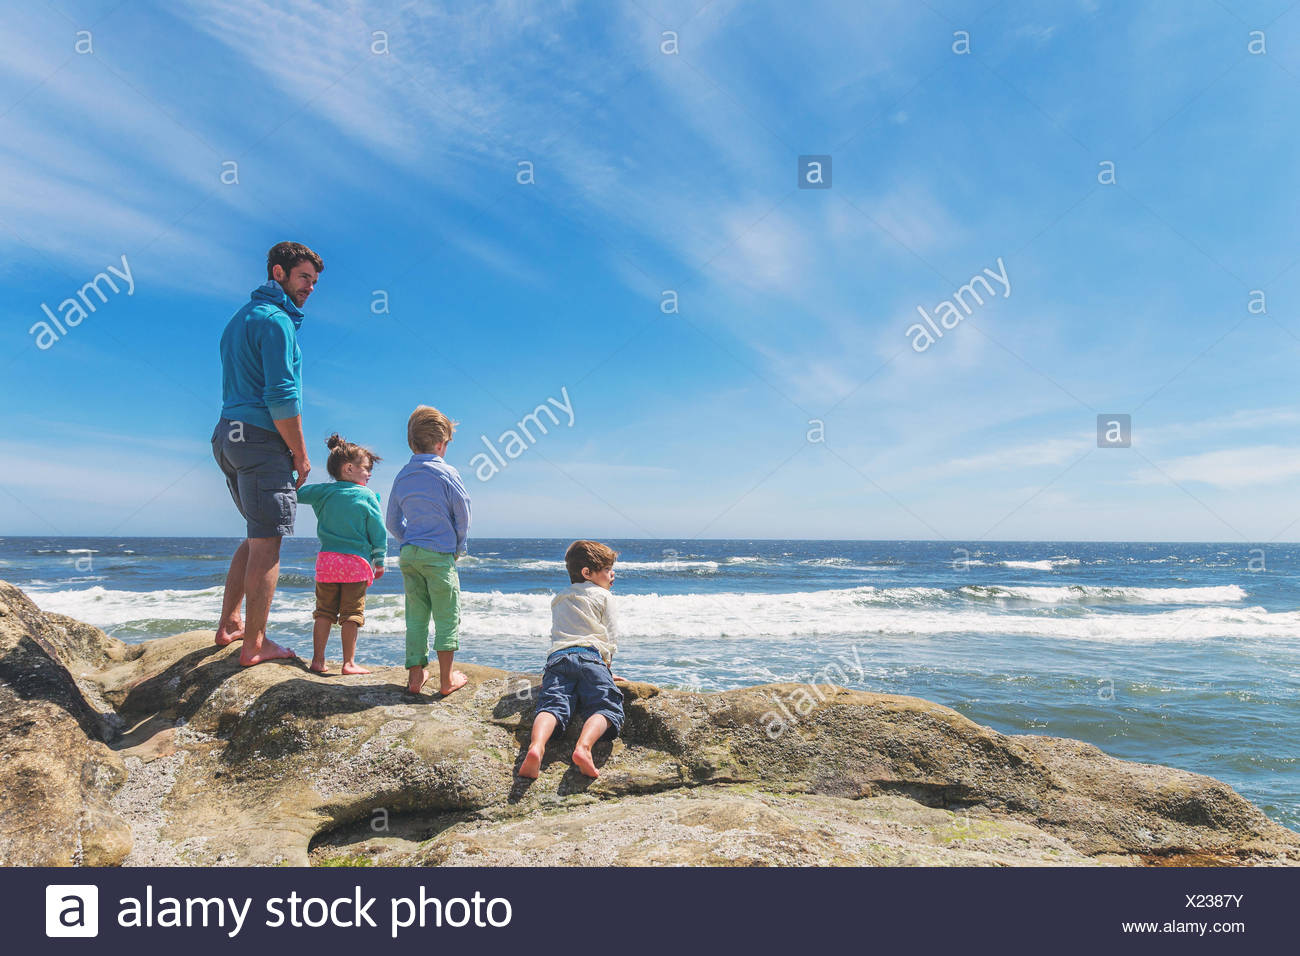 Father and three children on the beach - Stock Image